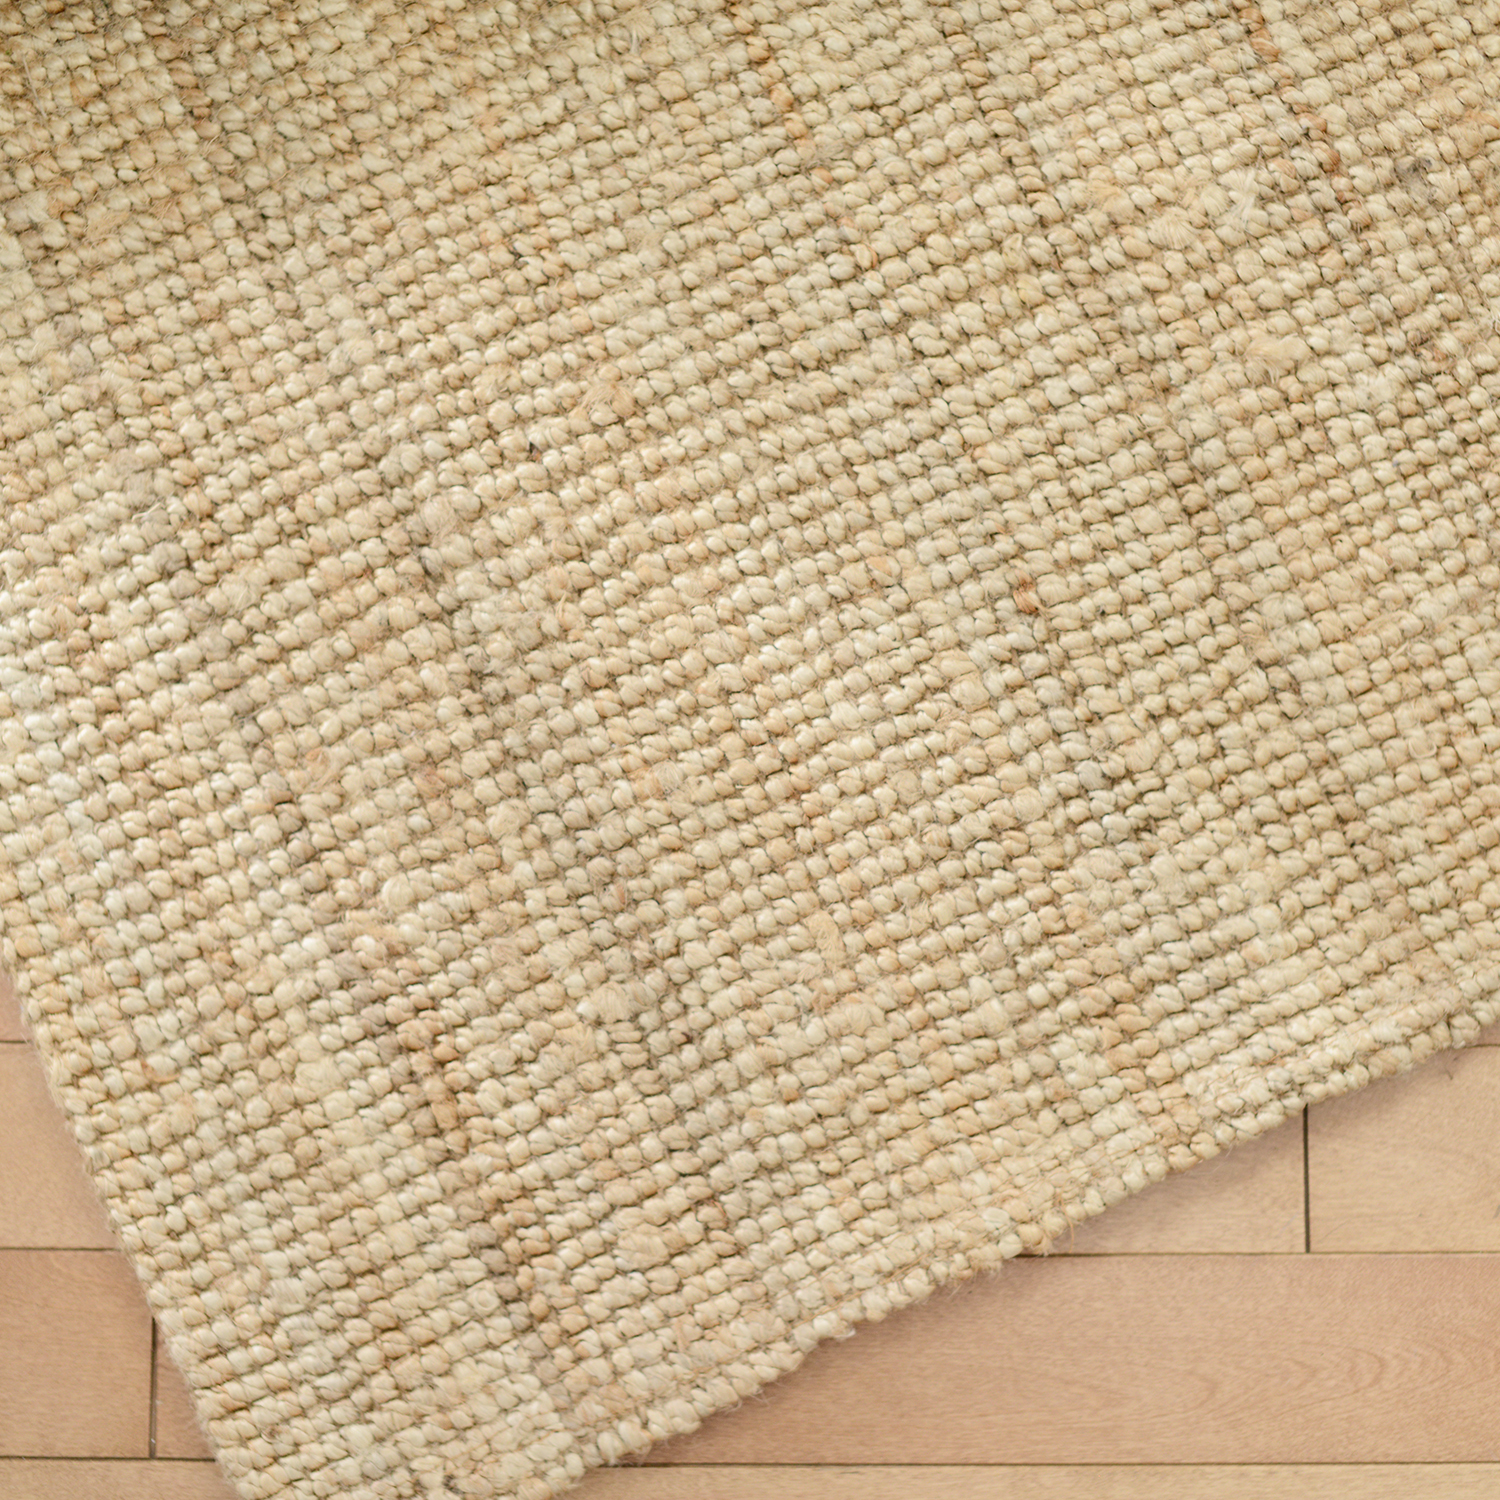 5x7 jute area rug - 2 available